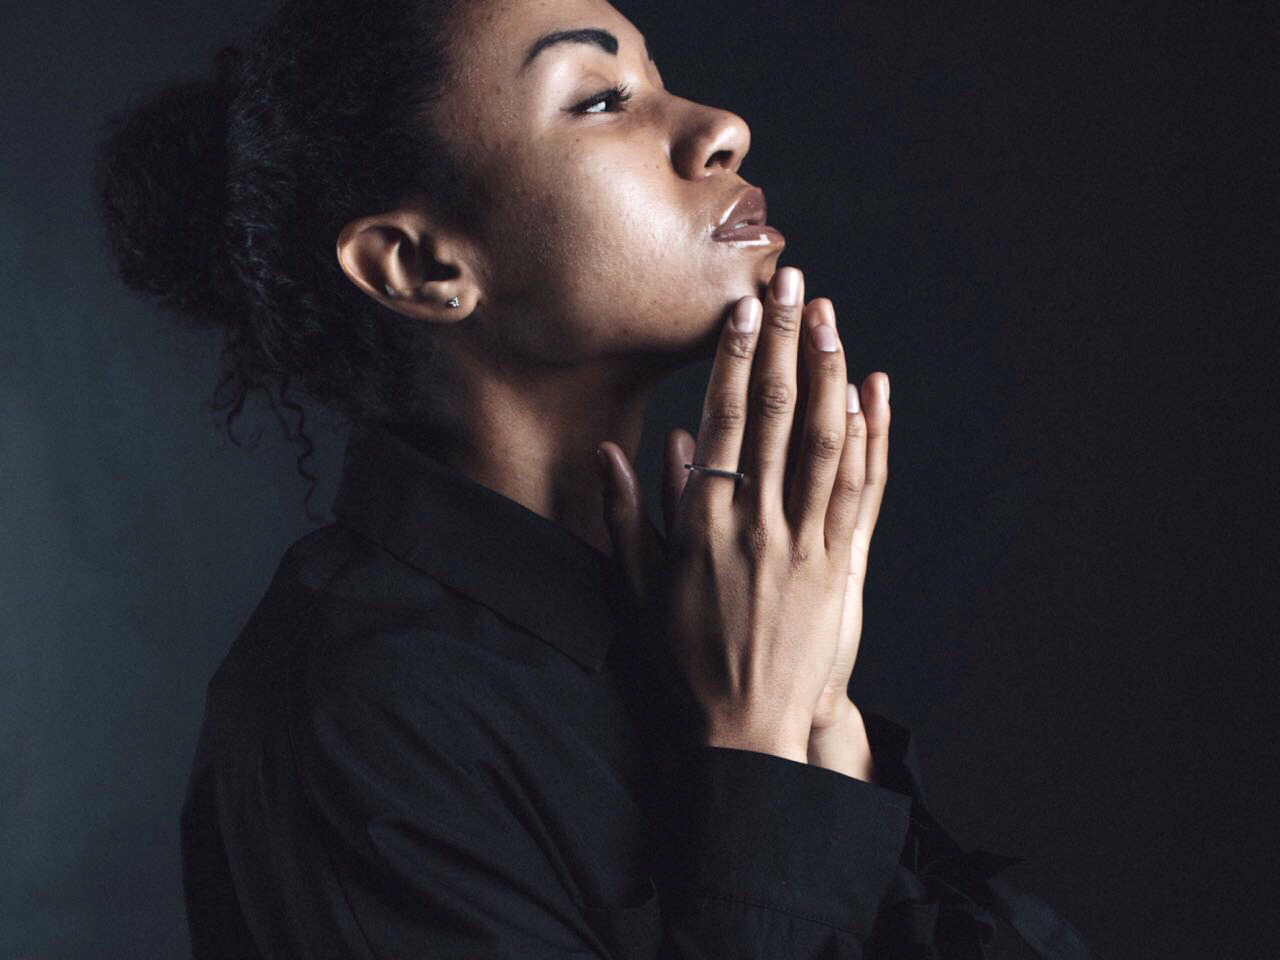 Stressed out woman rests chin on her hands